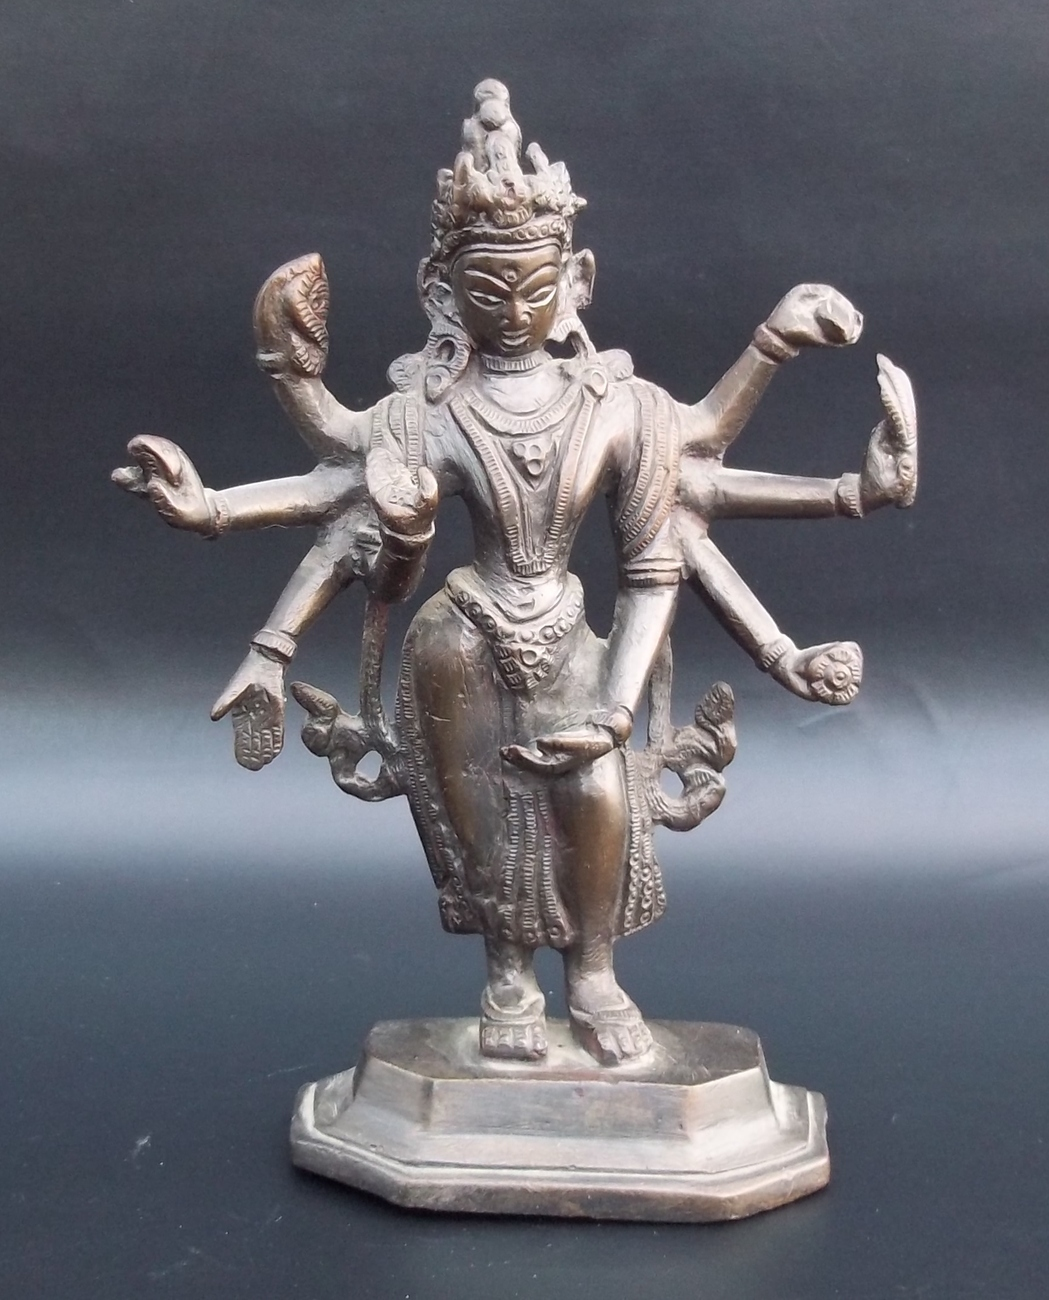 Vintage India Brass Hindu Lord Shiva Statue. Purchased In India 1960.